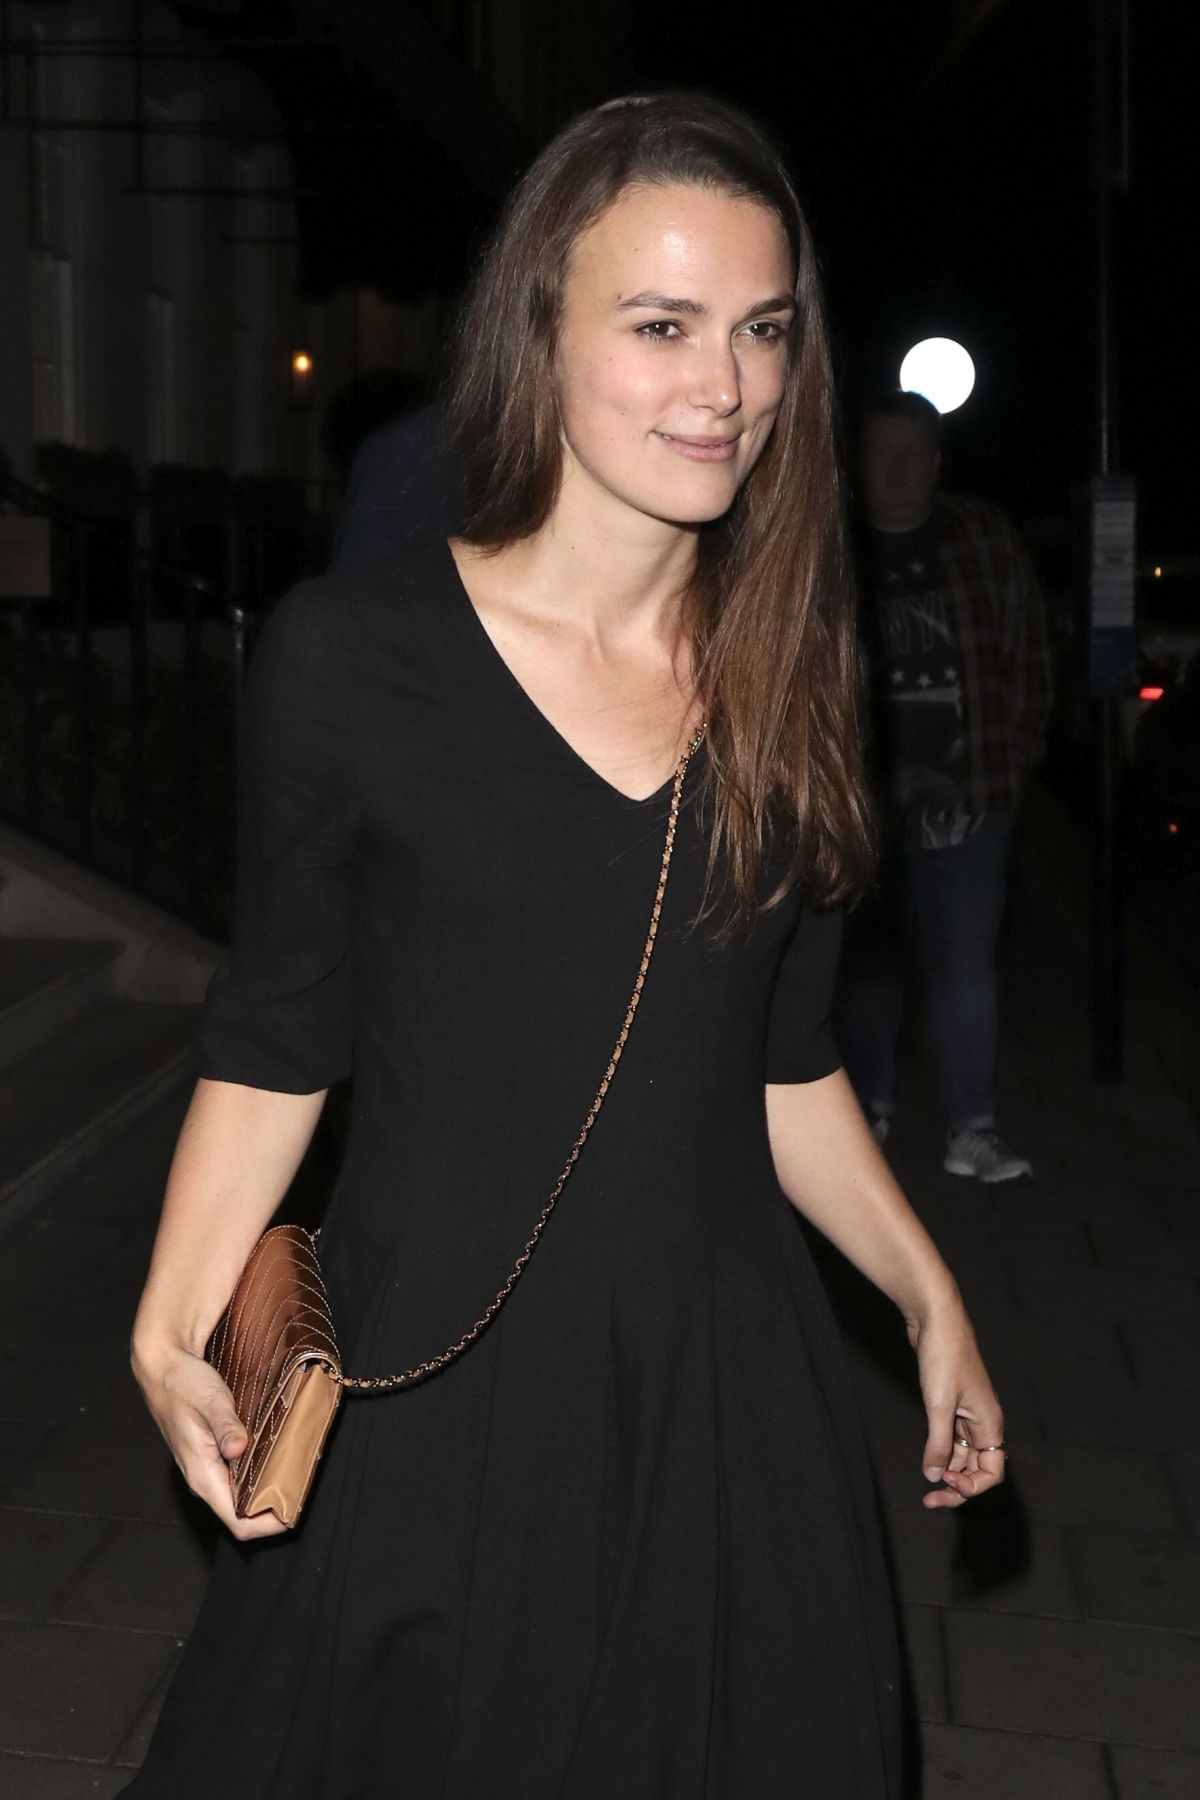 Keira Knightley Seen leaving 34 restaurant in London ... Keira Knightley